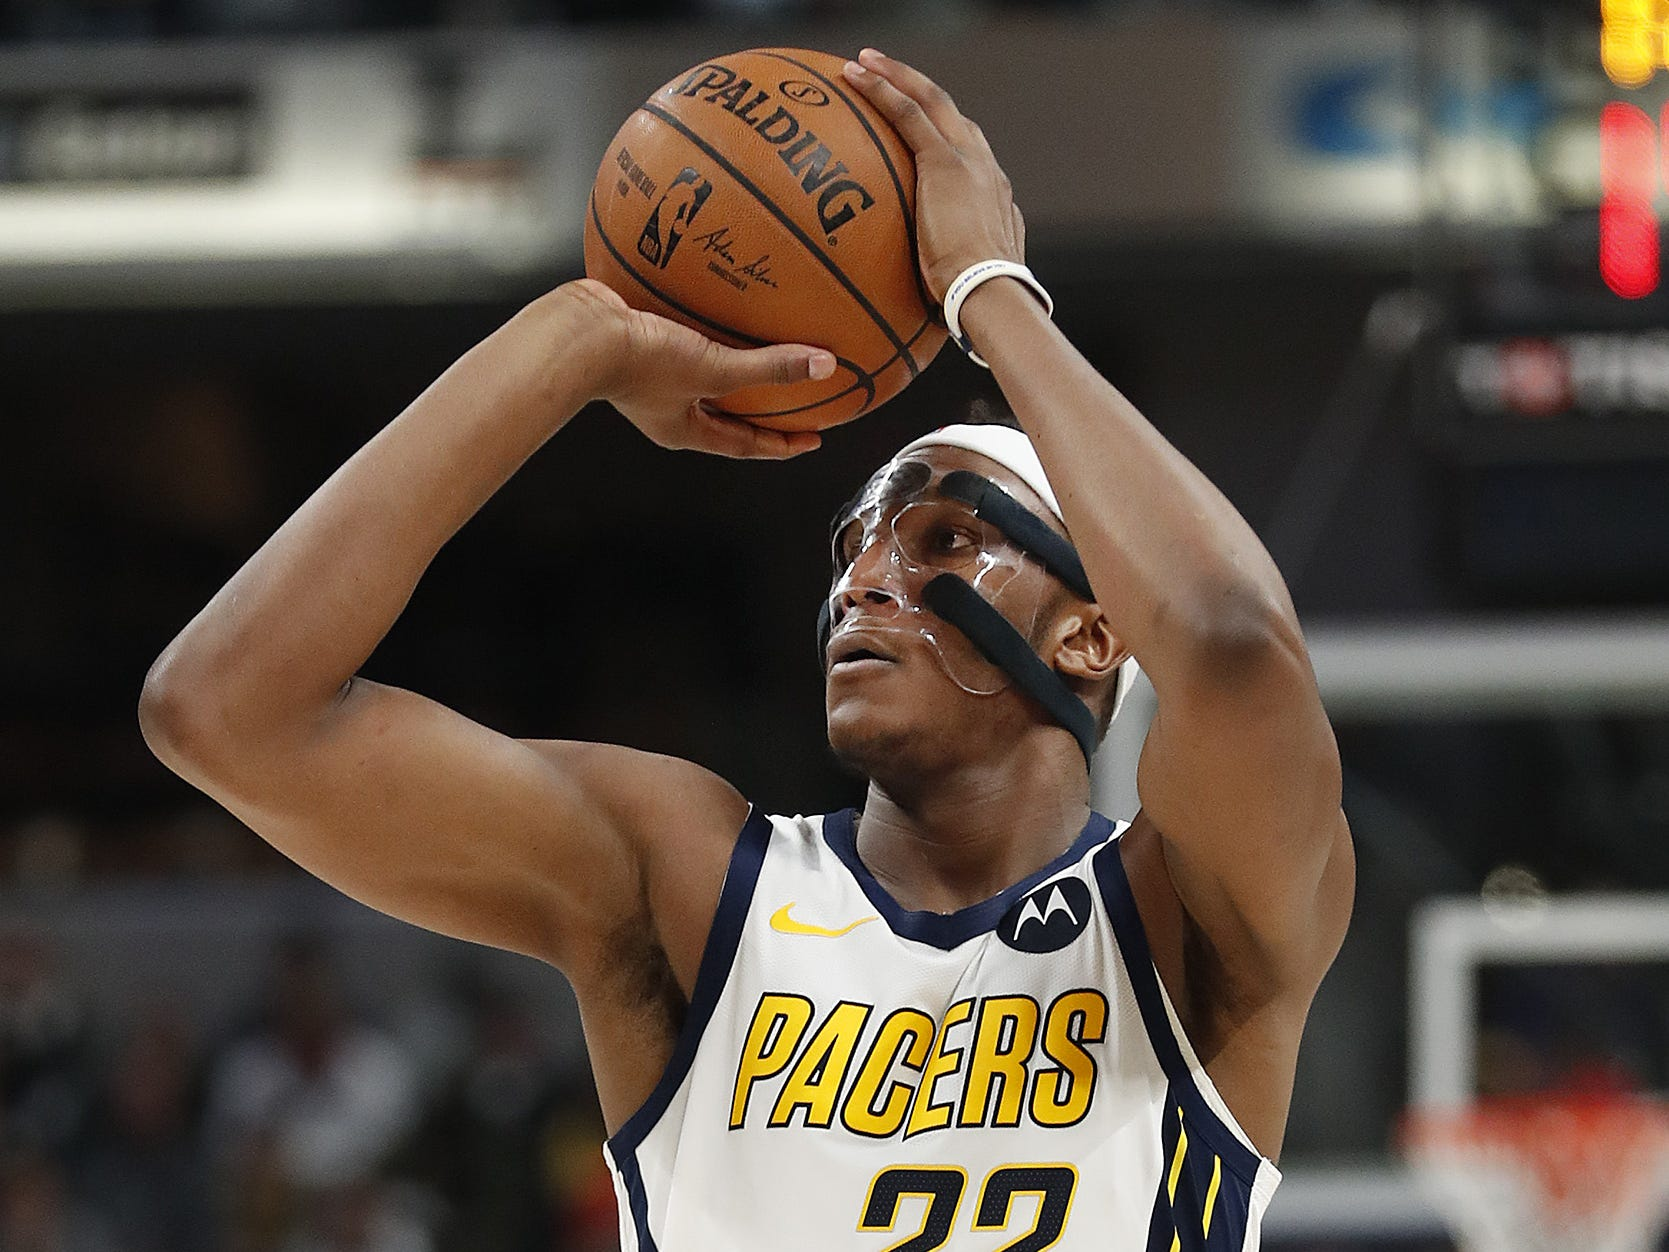 Indiana Pacers center Myles Turner (33) shoots a three-pointer in the first half of their game at Bankers Life Fieldouse on Tuesday, Feb. 5, 2019.